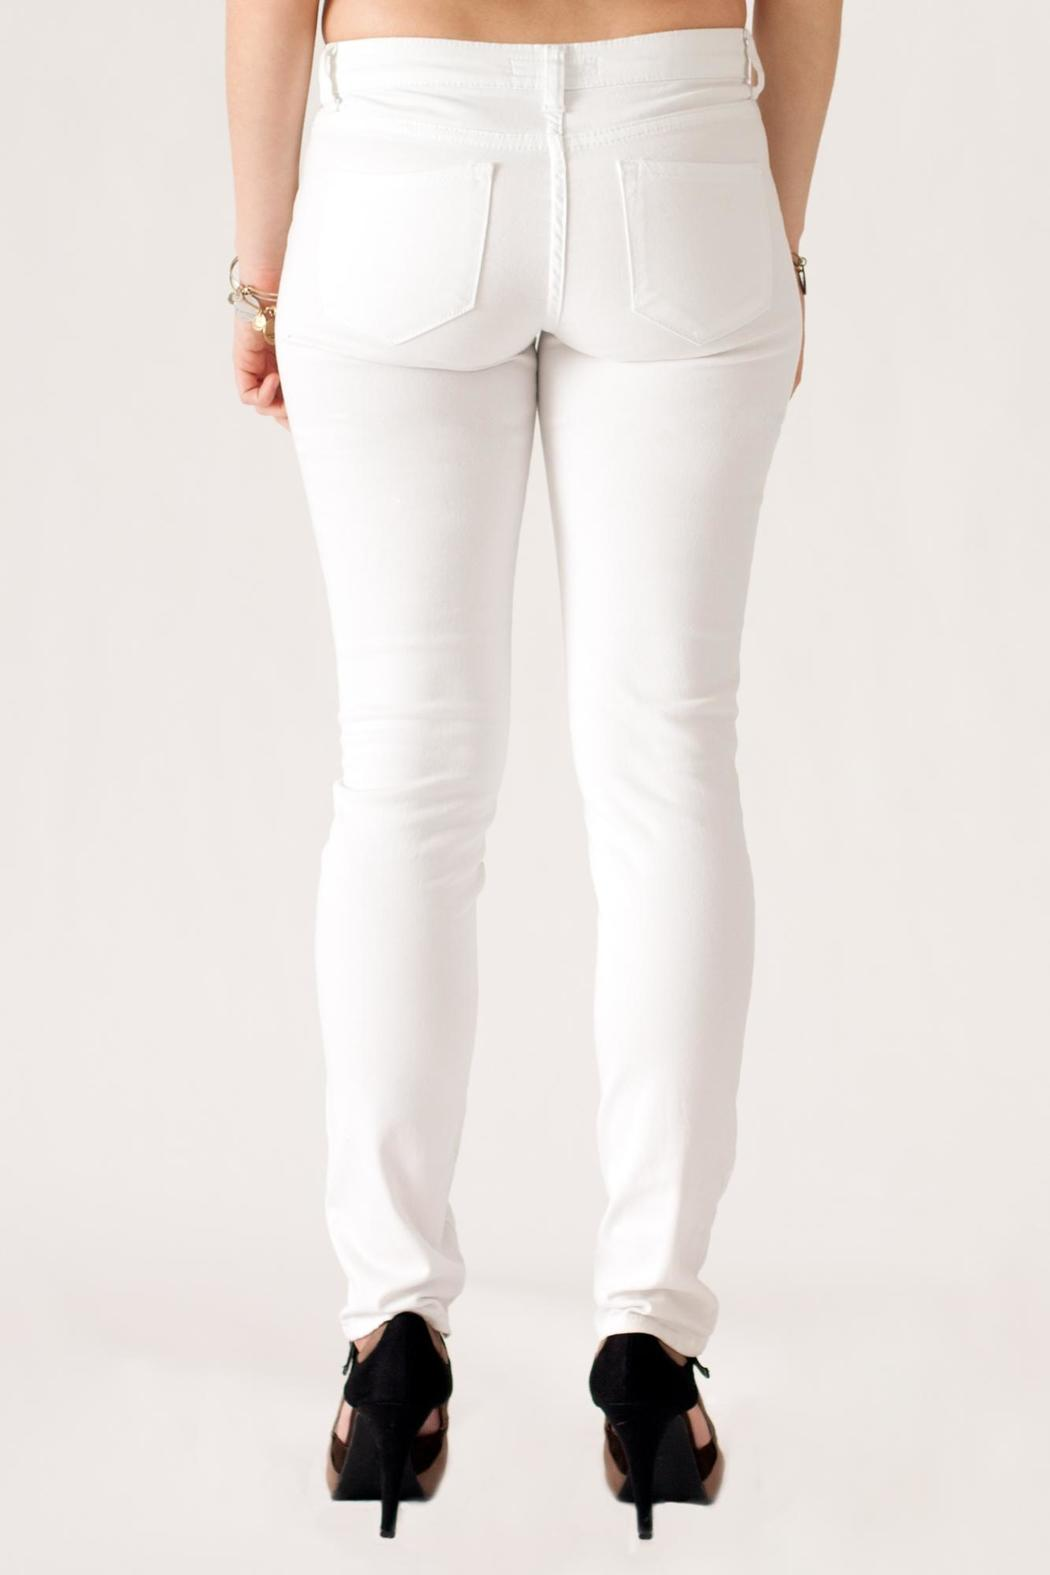 Cielo White Skinny Jeans - Back Cropped Image